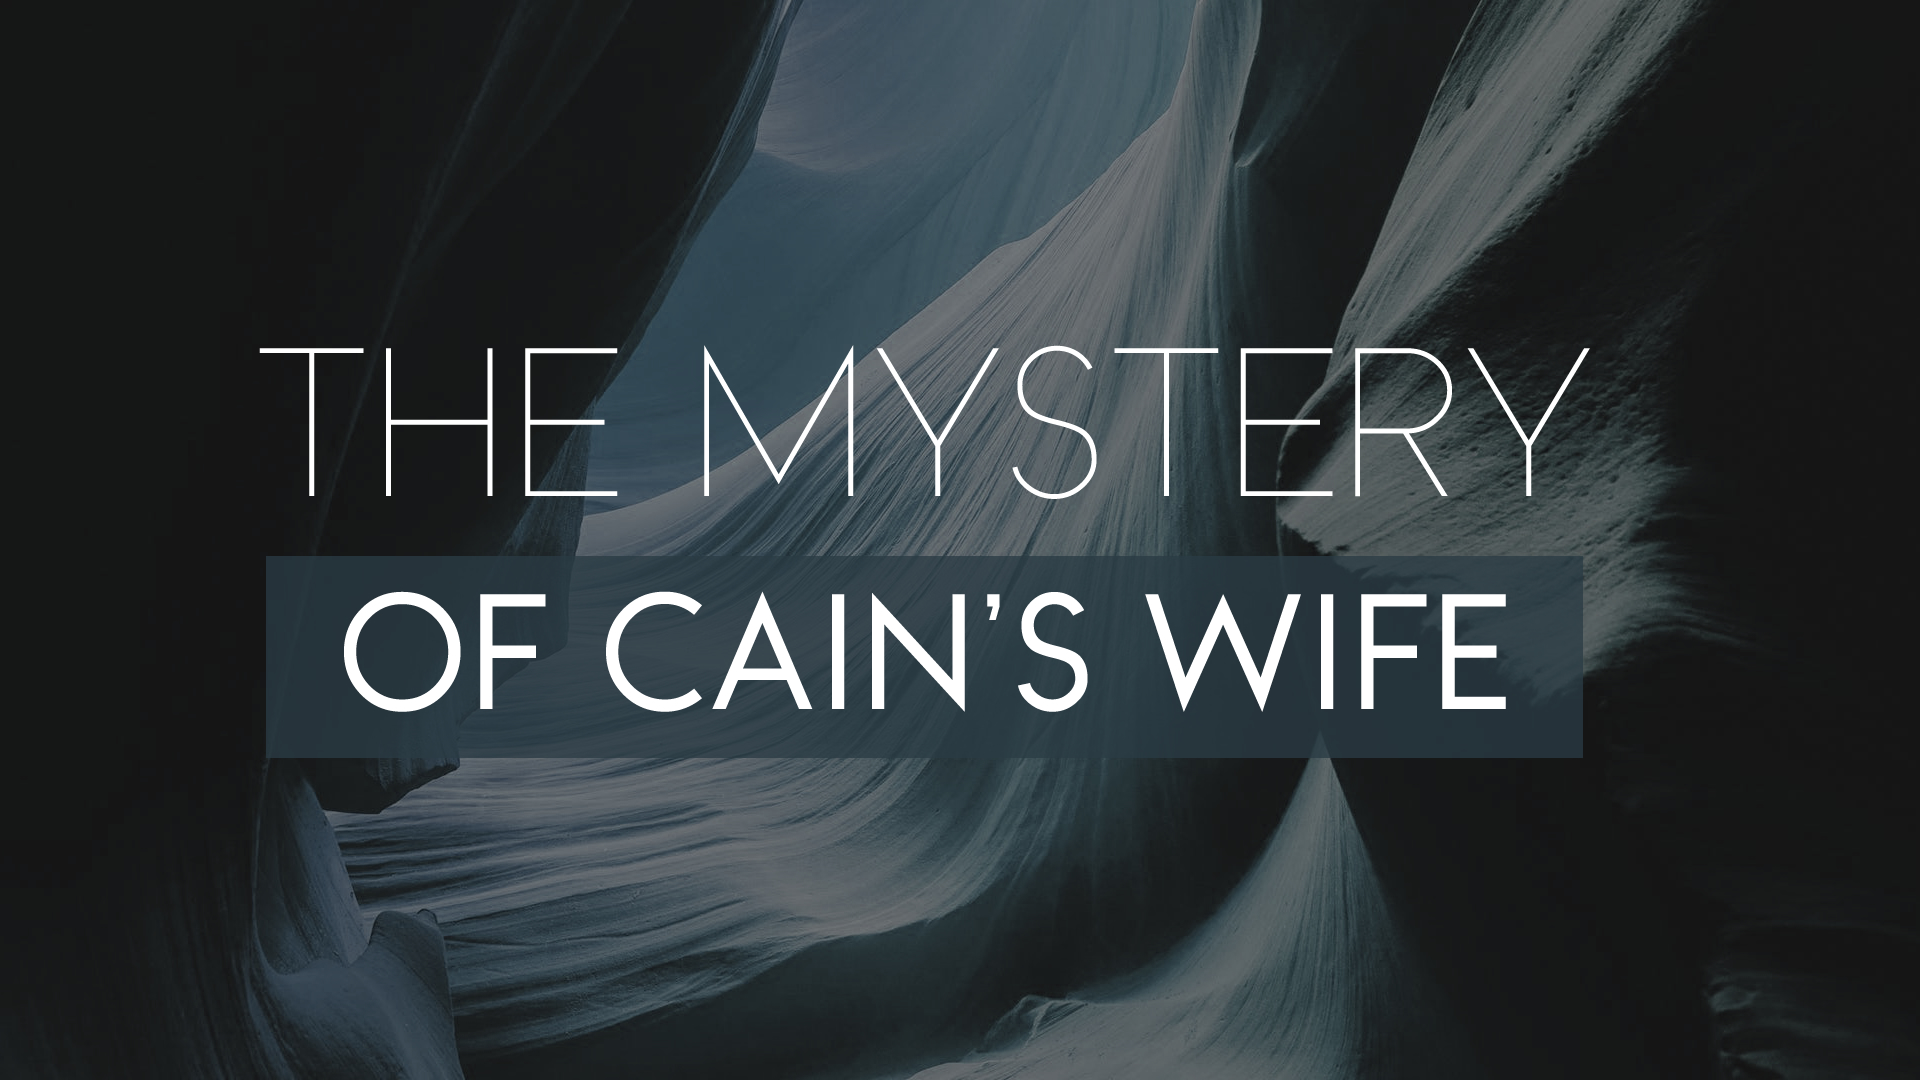 The Mystery of Cain's Wife.jpg